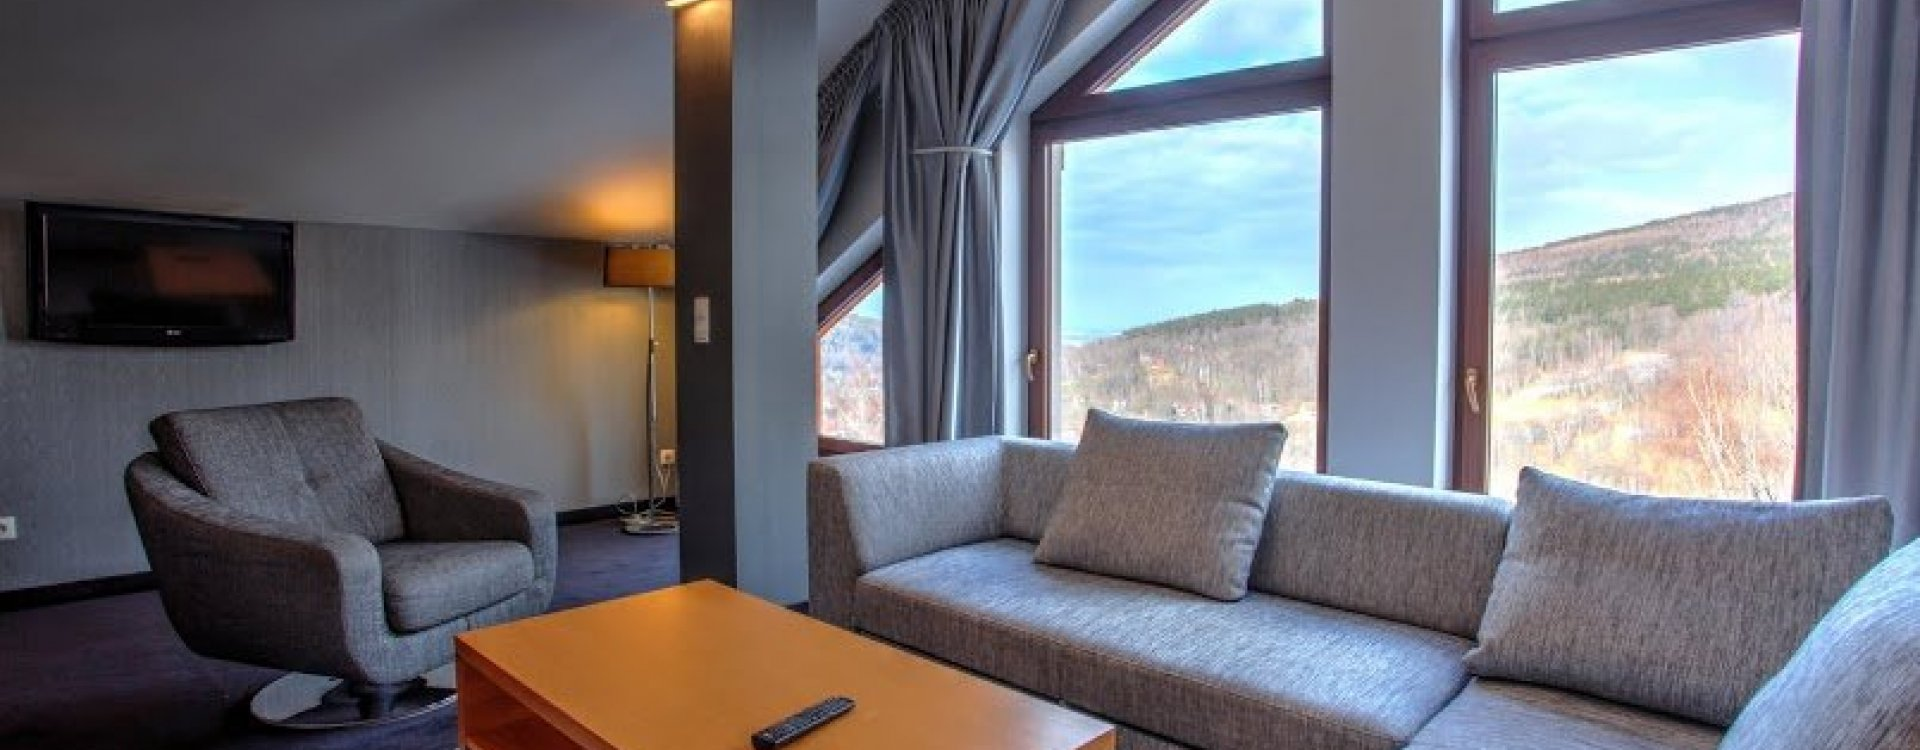 FAMILY LUX WITH A VIEW OF MOUNTAINS 4 *